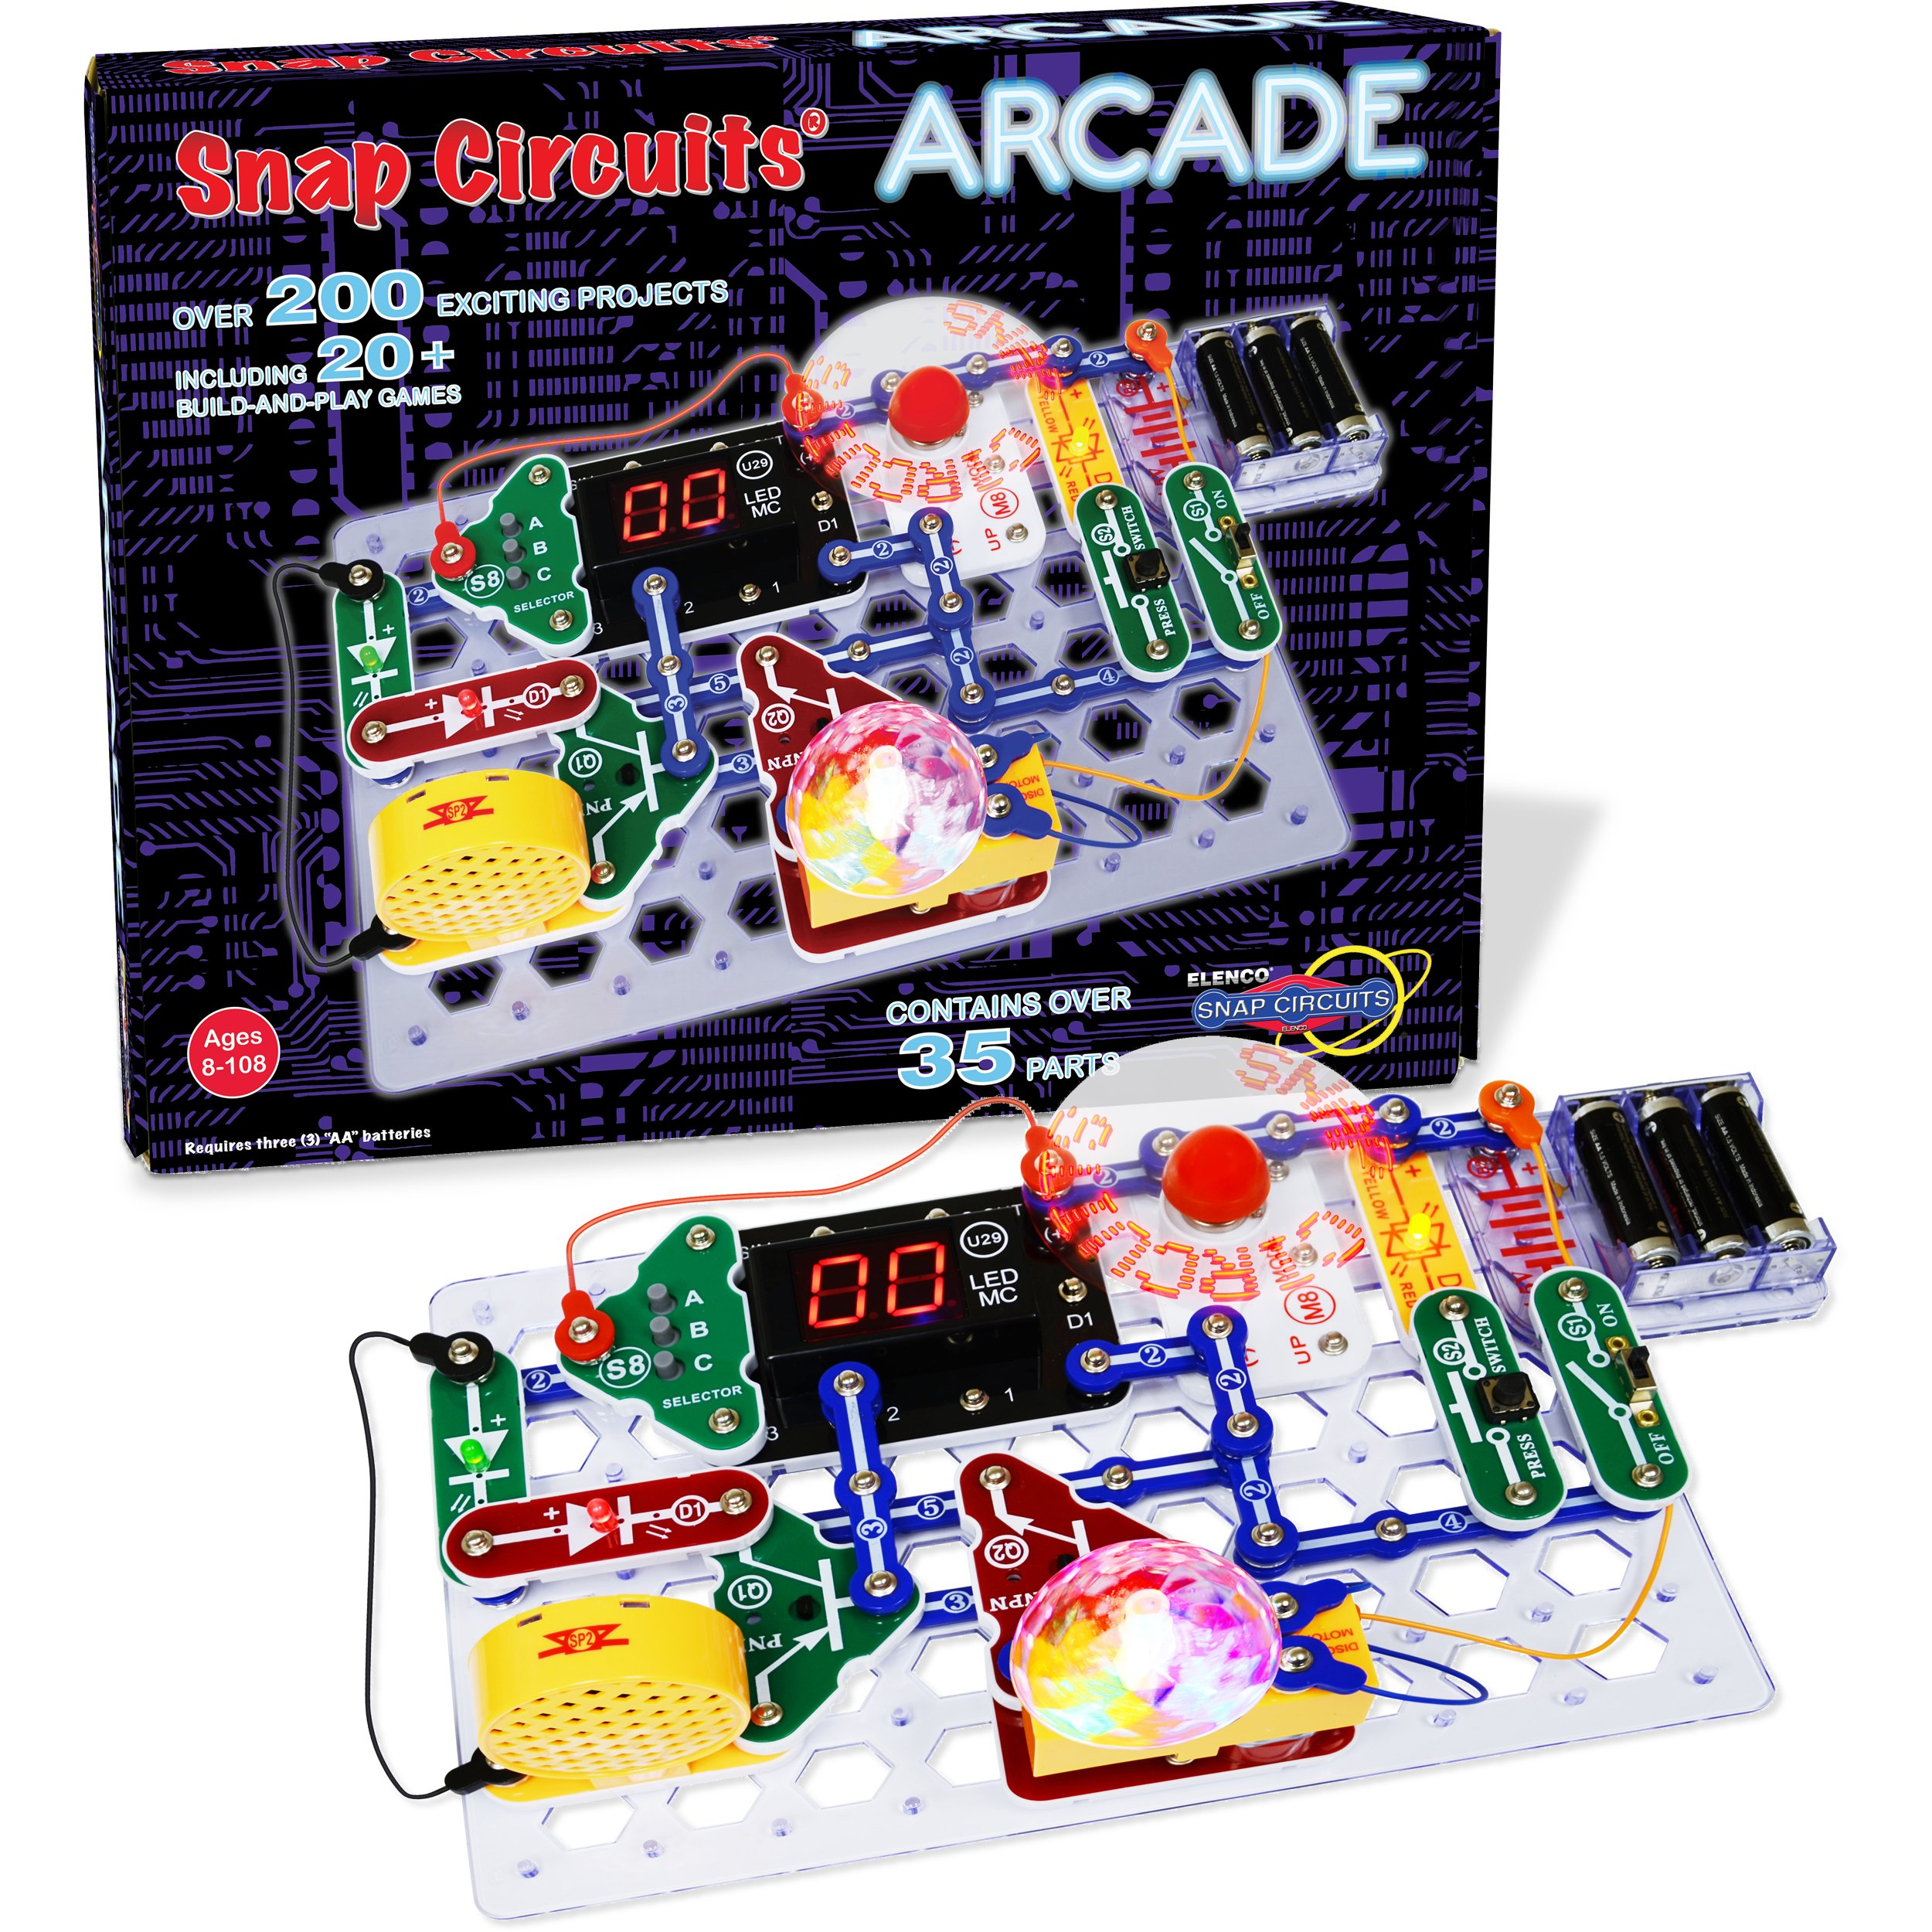 Snap Circuits Arcade Electronics Exploration Kit | Over 200 STEM Projects | 4-Color Project Manual | 20+ Build and Play Games  | 35+ Snap Modules | Unlimited Fun by Snap Circuits